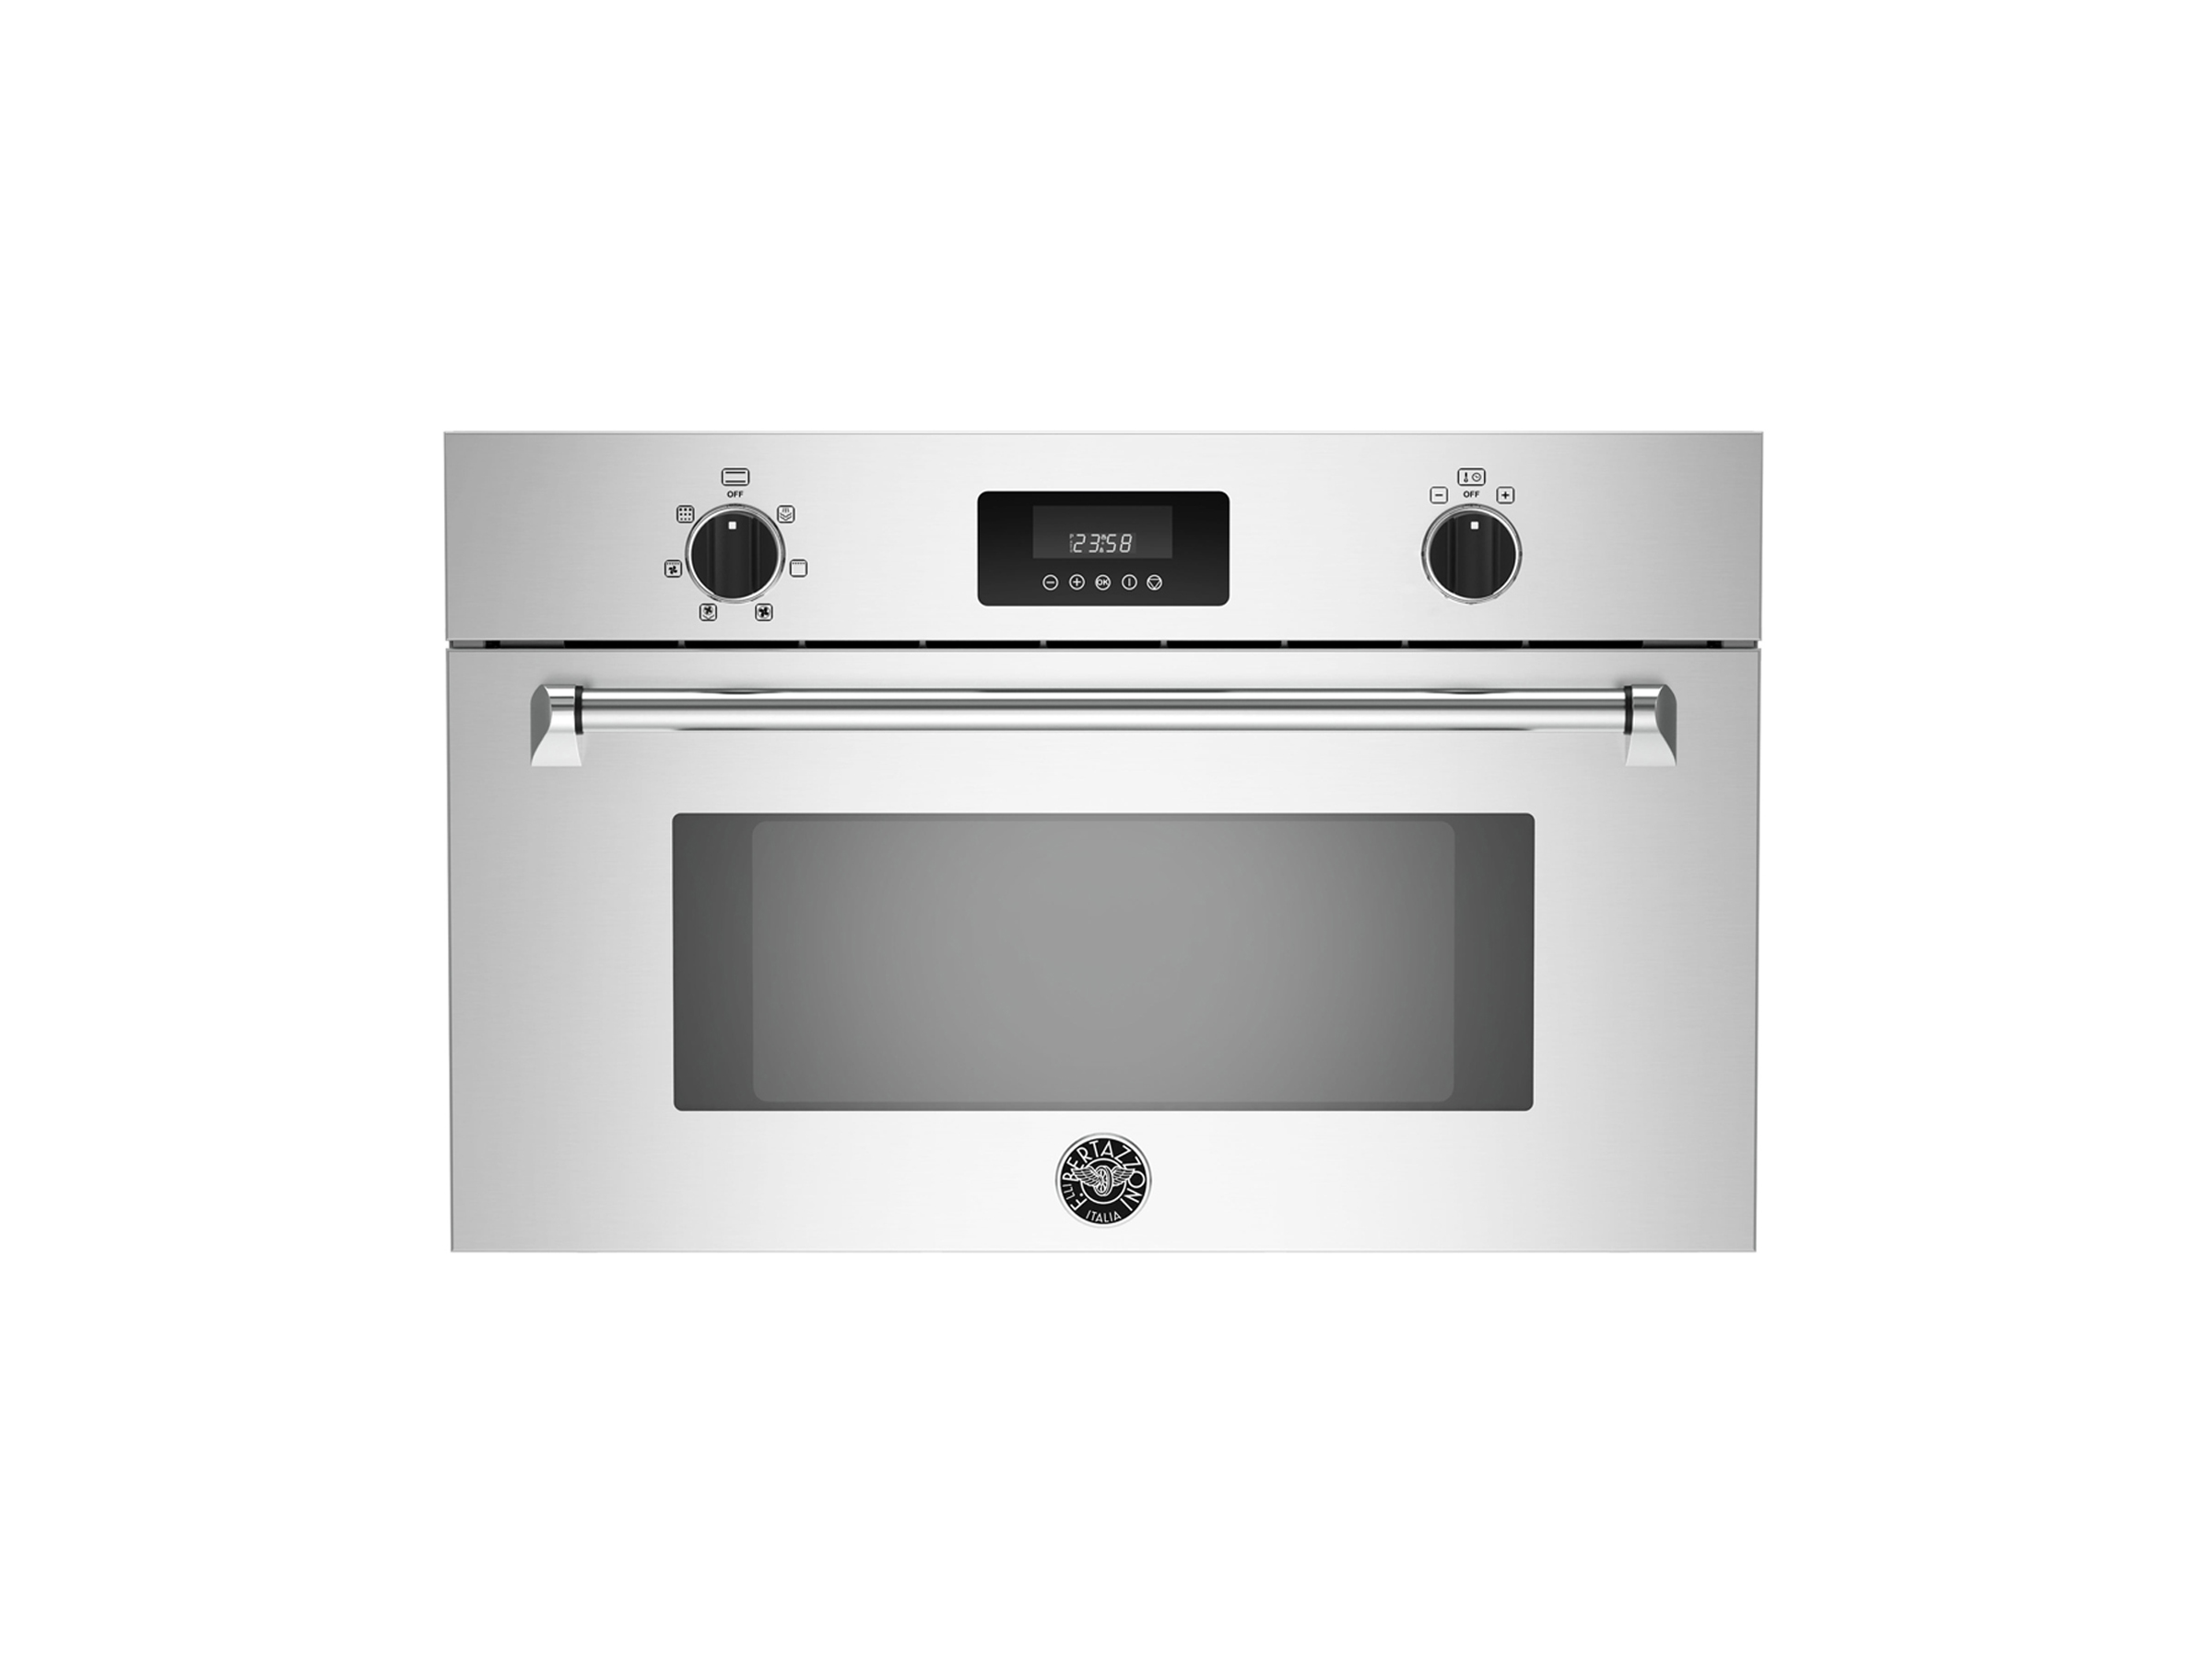 30 Convection Steam Oven | Bertazzoni - Stainless